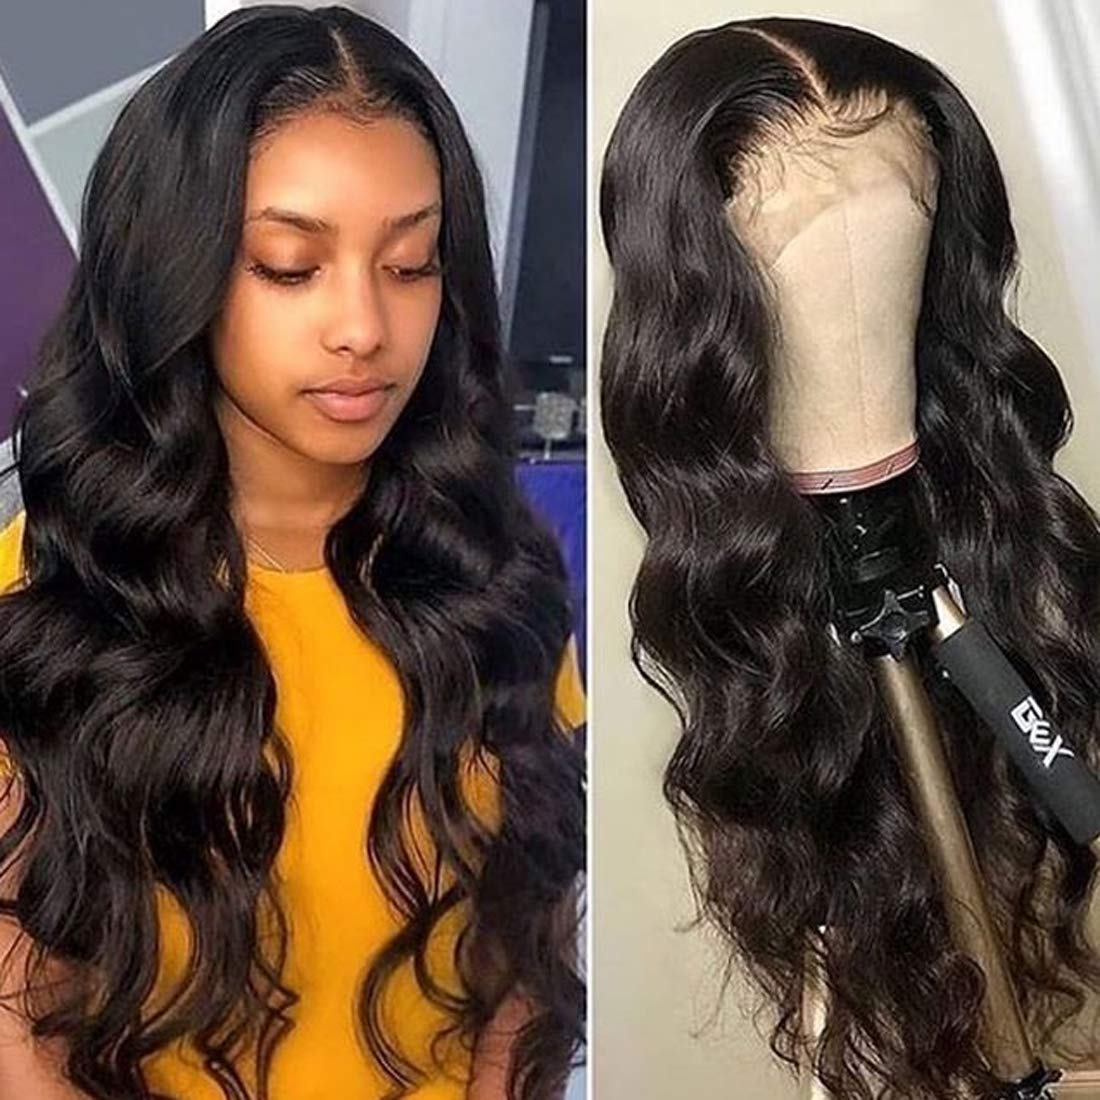 ZXZ Body Wave Lace Front Human Hair Wigs For Black Women 18 Inch 9A Brazilian Virgin Hair Pre plucked Human Hair Wigs With Baby Hair Wet and Wavy Glueless Lace Front Wigs(18 Inch)